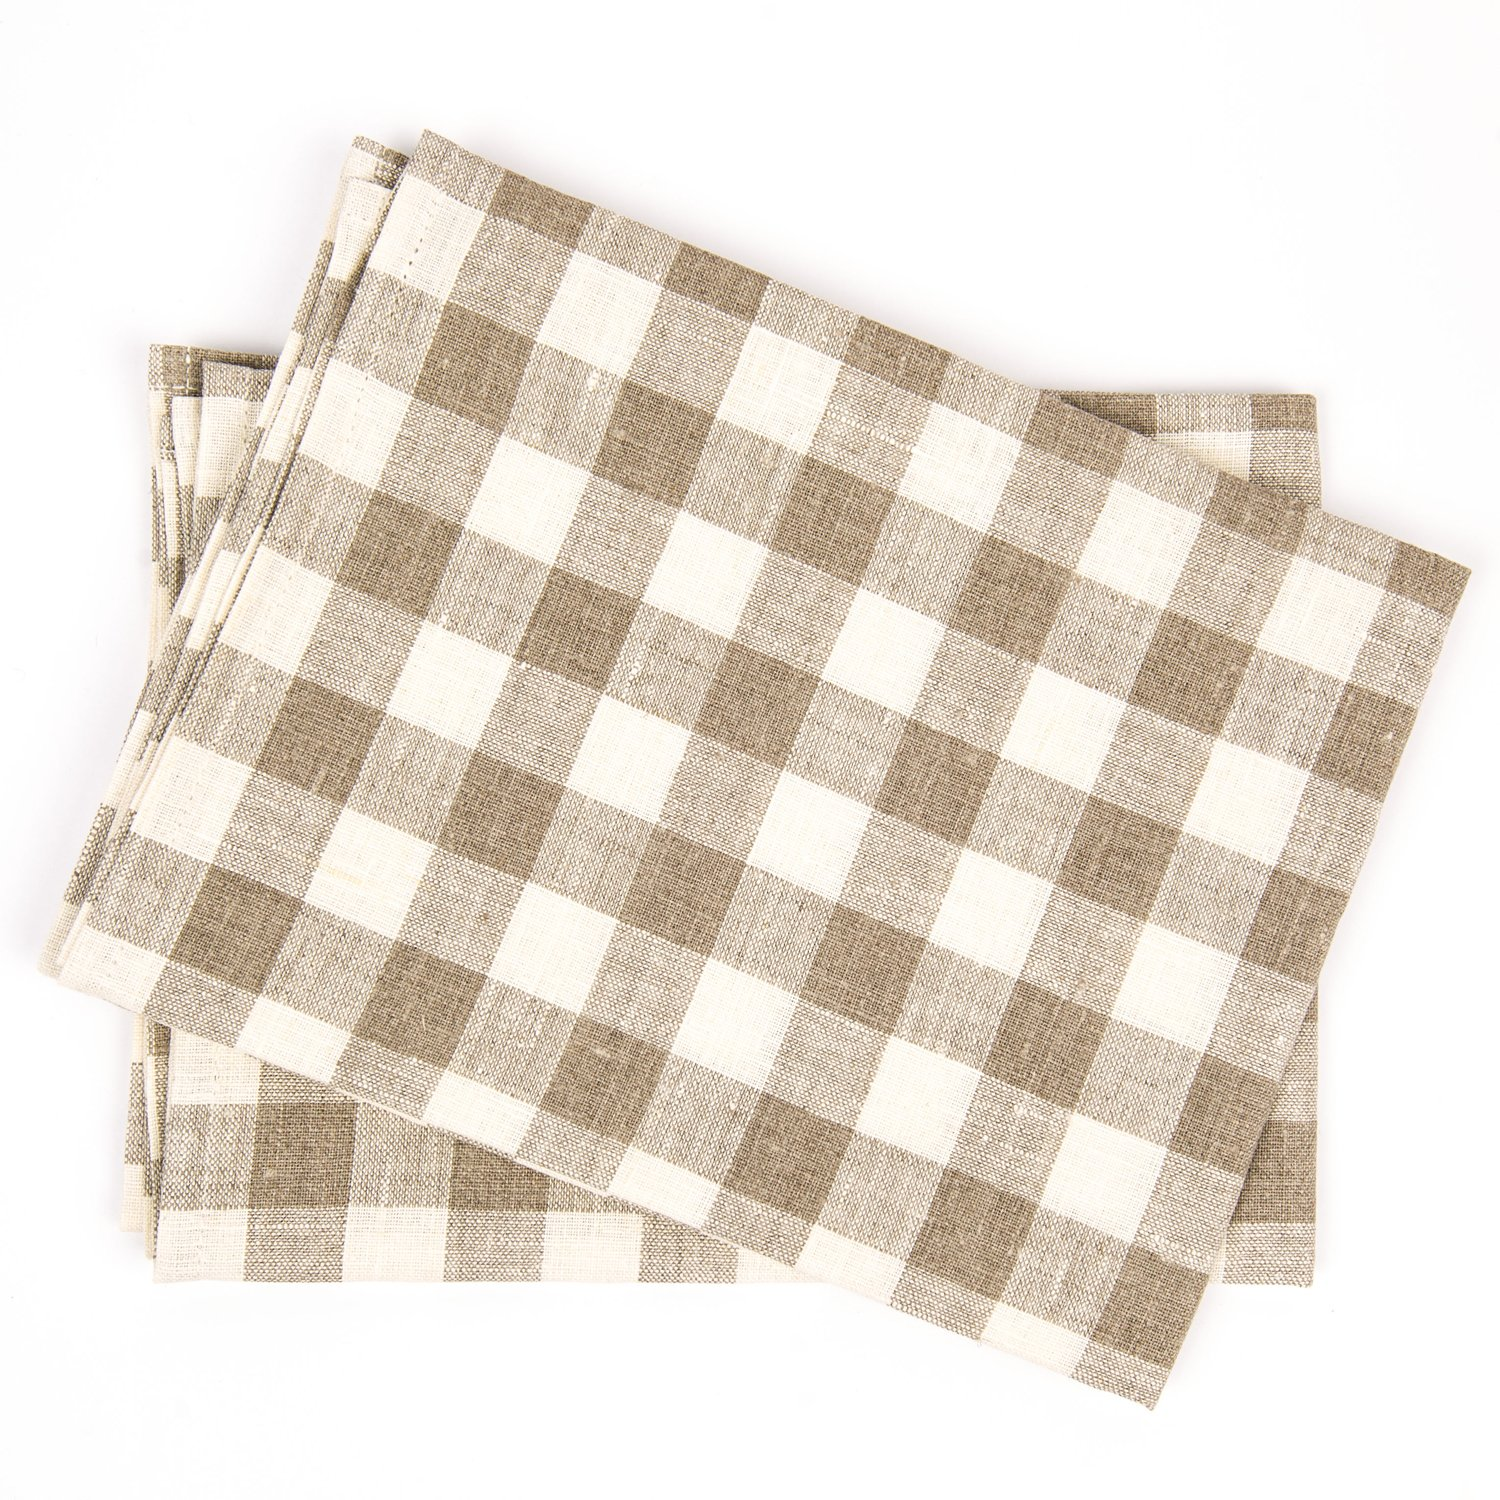 19 by 28-Inch LinenMe Check X2 Tea Towels Natural//Off-White